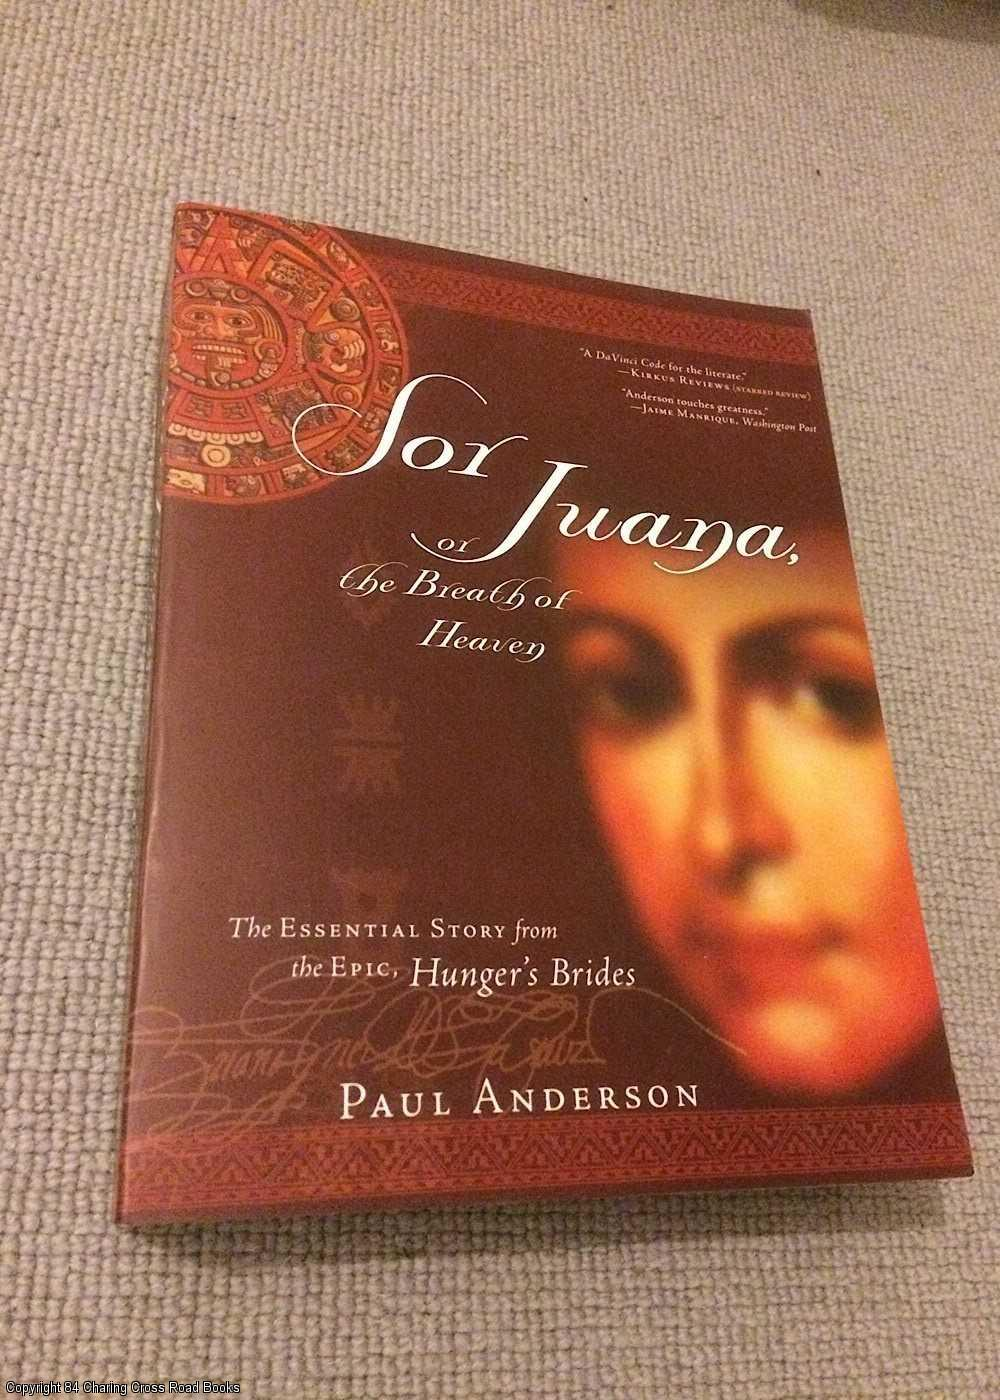 ANDERSON, PAUL - Sor Juana or the Breath of Heaven